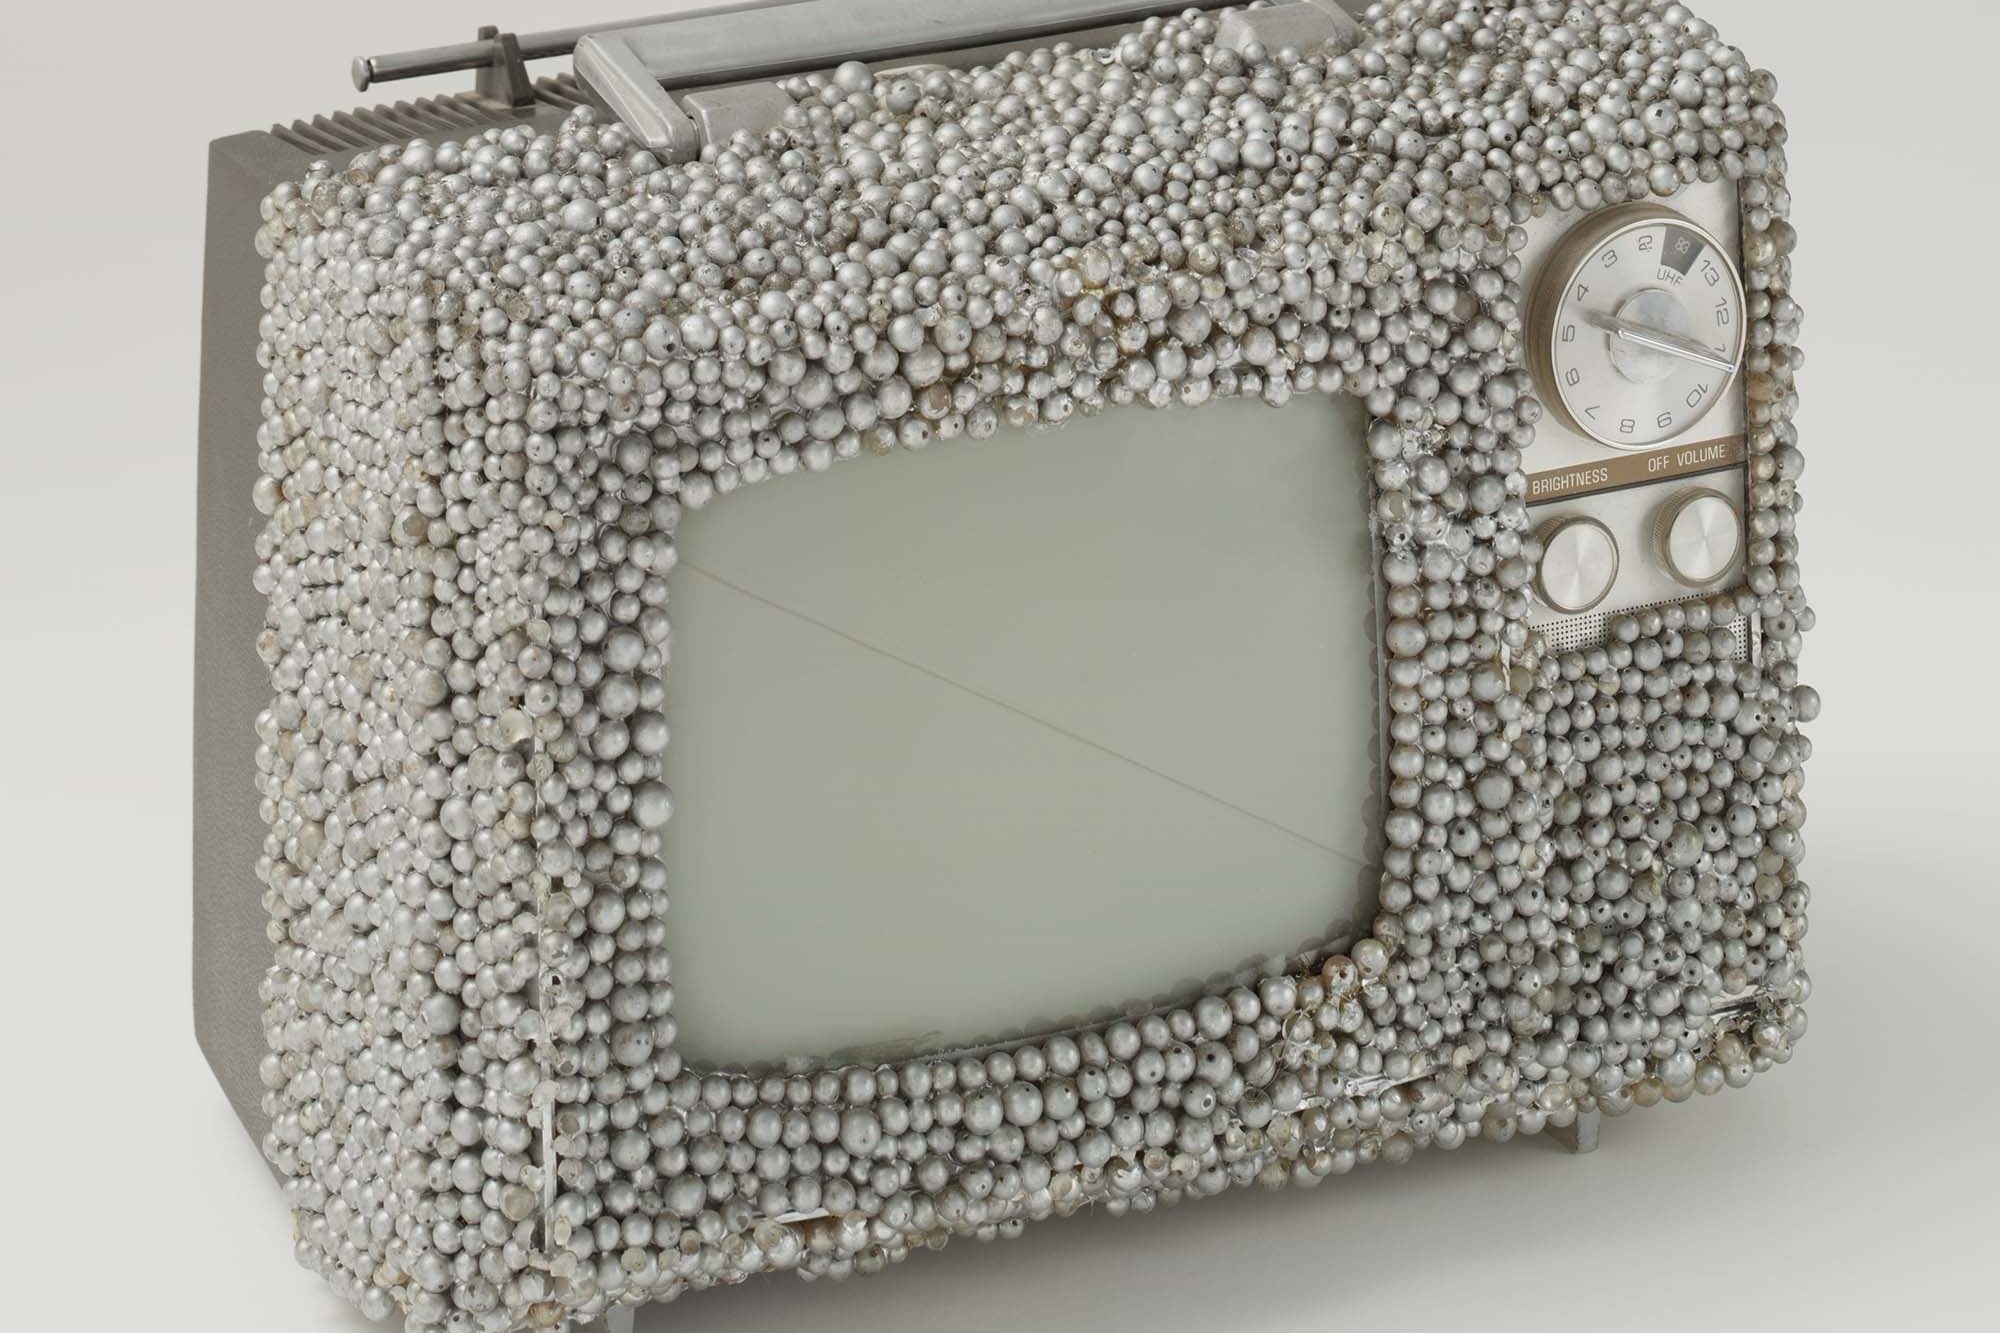 Nam June Paik and Otto Piene. Untitled. 1968. Manipulated television set and plastic pearls, 9 × 13 × 10″ (22.9 × 33 × 25.4 cm). Gift of The Junior Associates of The Museum of Modern Art, New York, The Greenwich Collection Ltd. Fund, and gift of Margot Ernst. © 2003 The Museum of Modern Art. Photo: Thomas Griesel